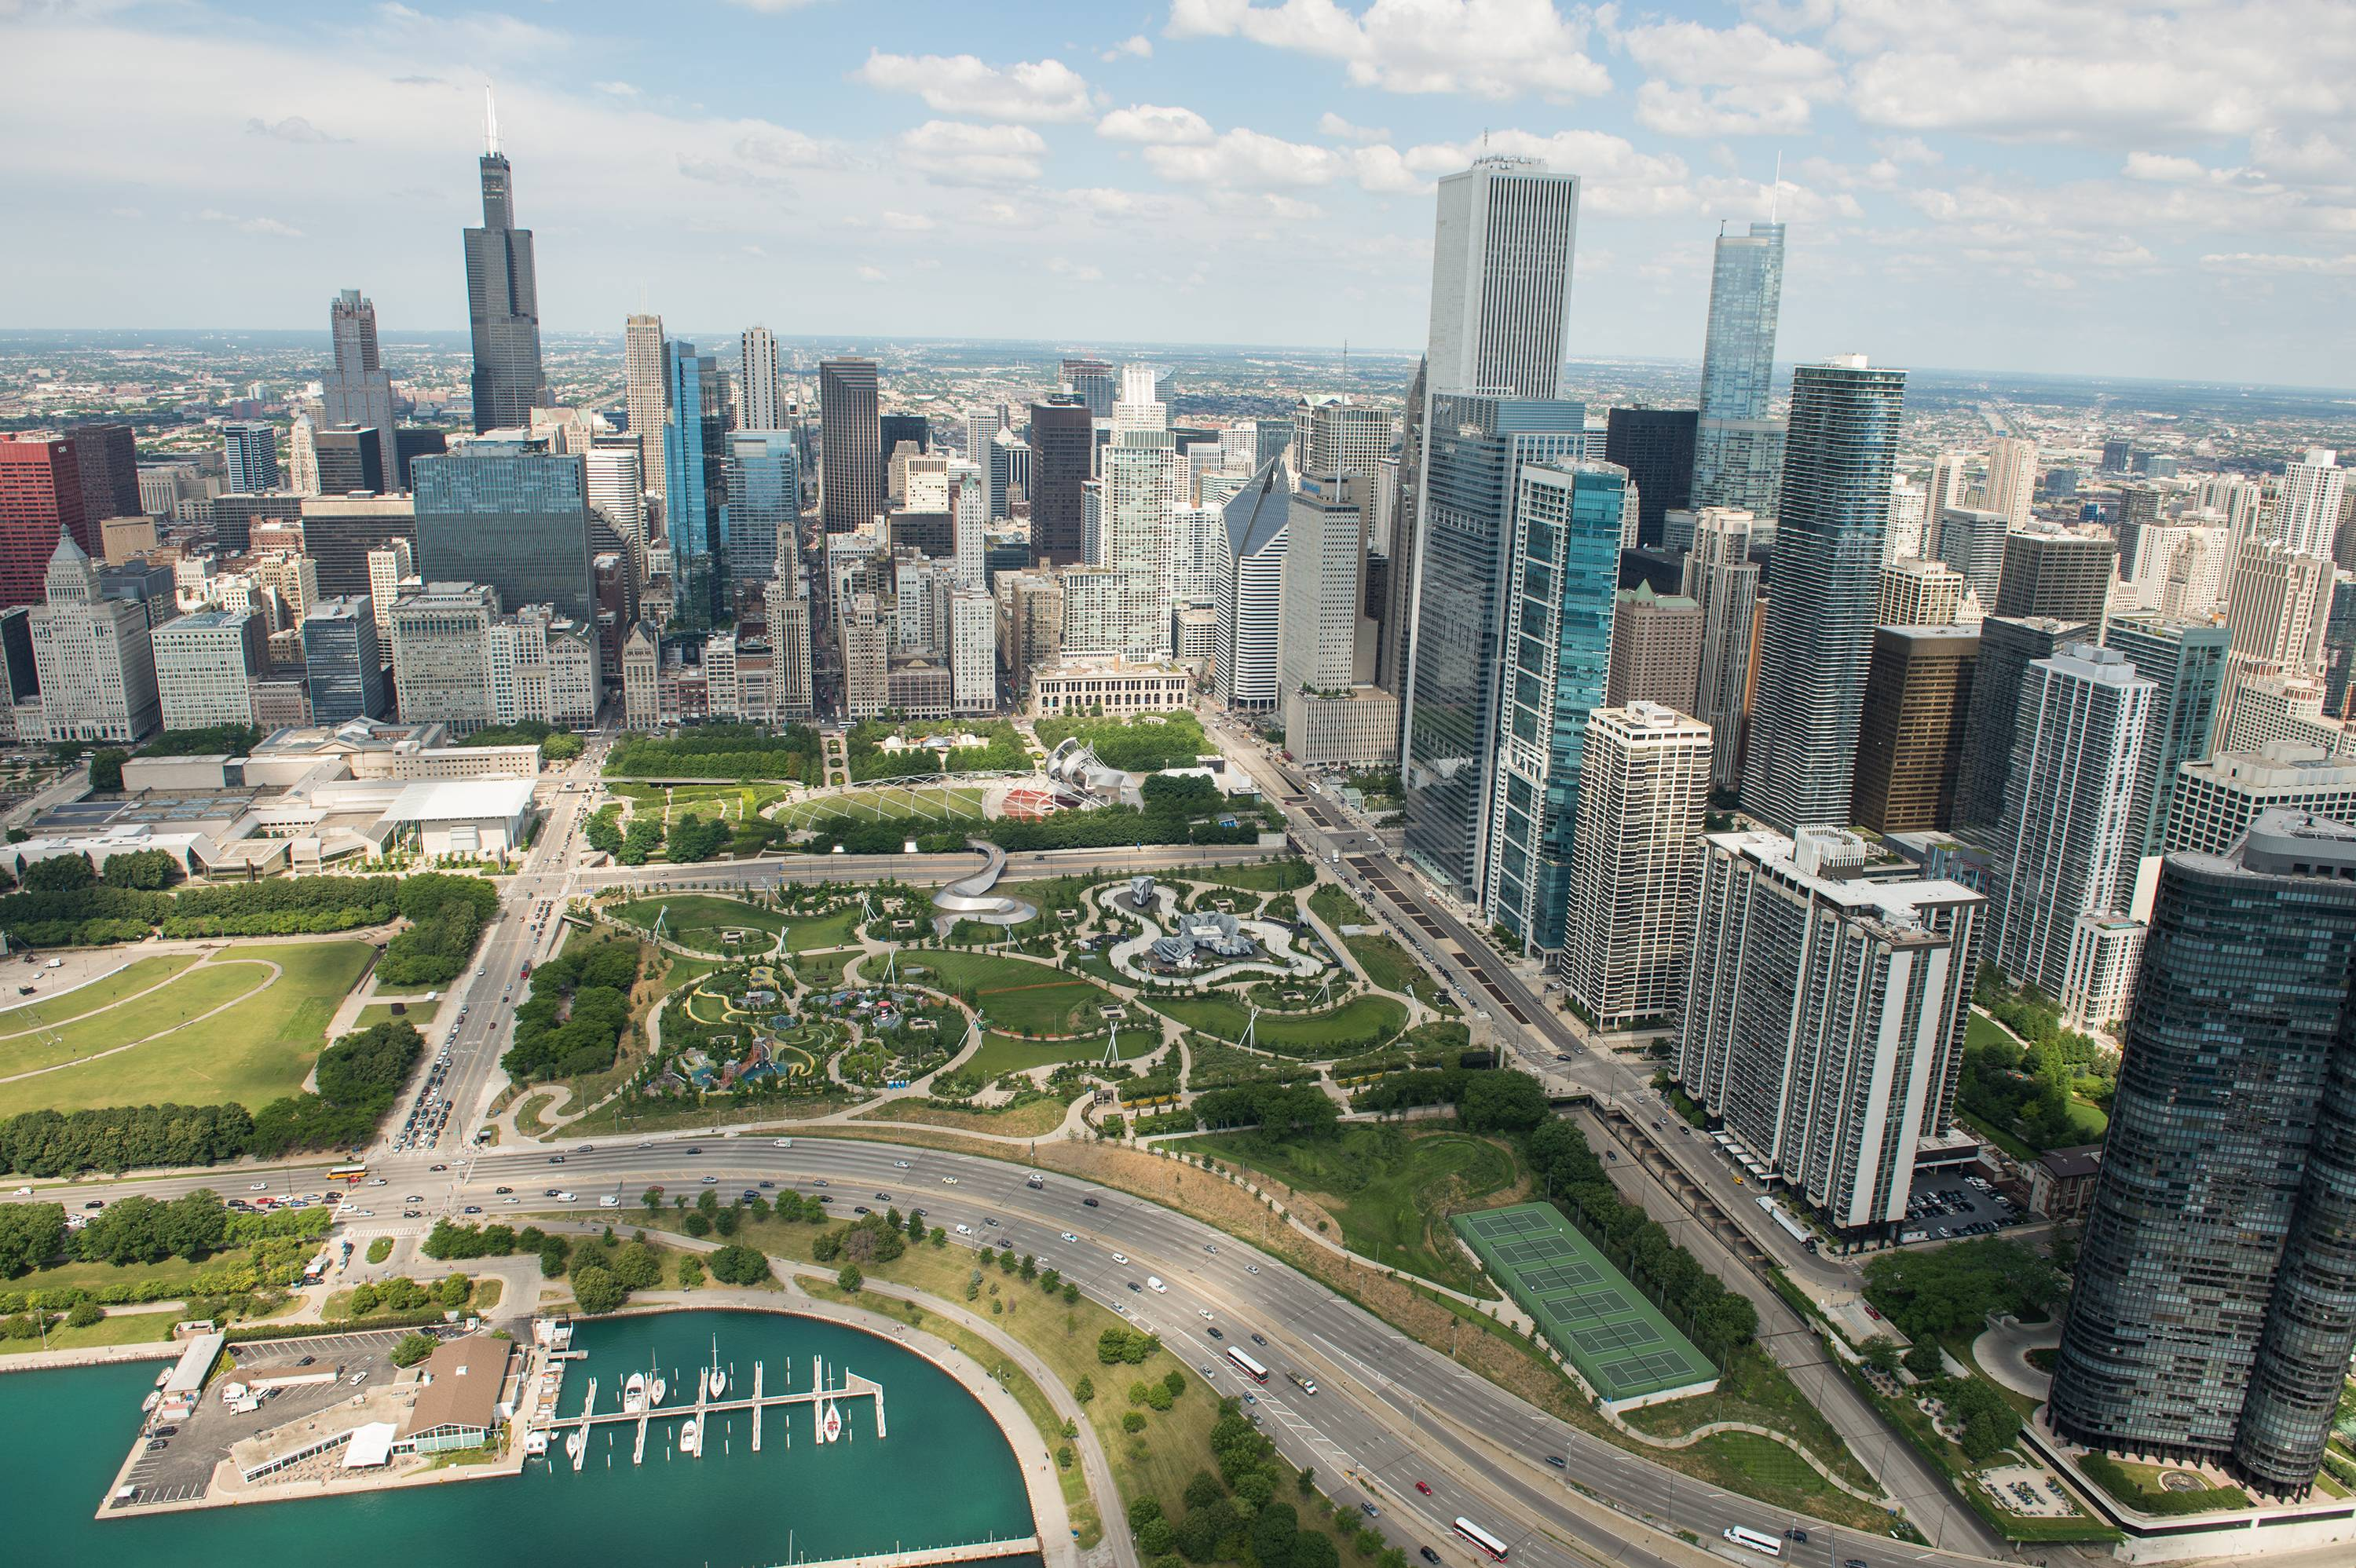 The beauty of Chicago's lakefront Maggie Daley Park was enhanced by fertilizer made from sewage by the Metropolitan Water Reclamation District of Greater Chicago. The agency now wants to market that product to suburban gardeners and others.